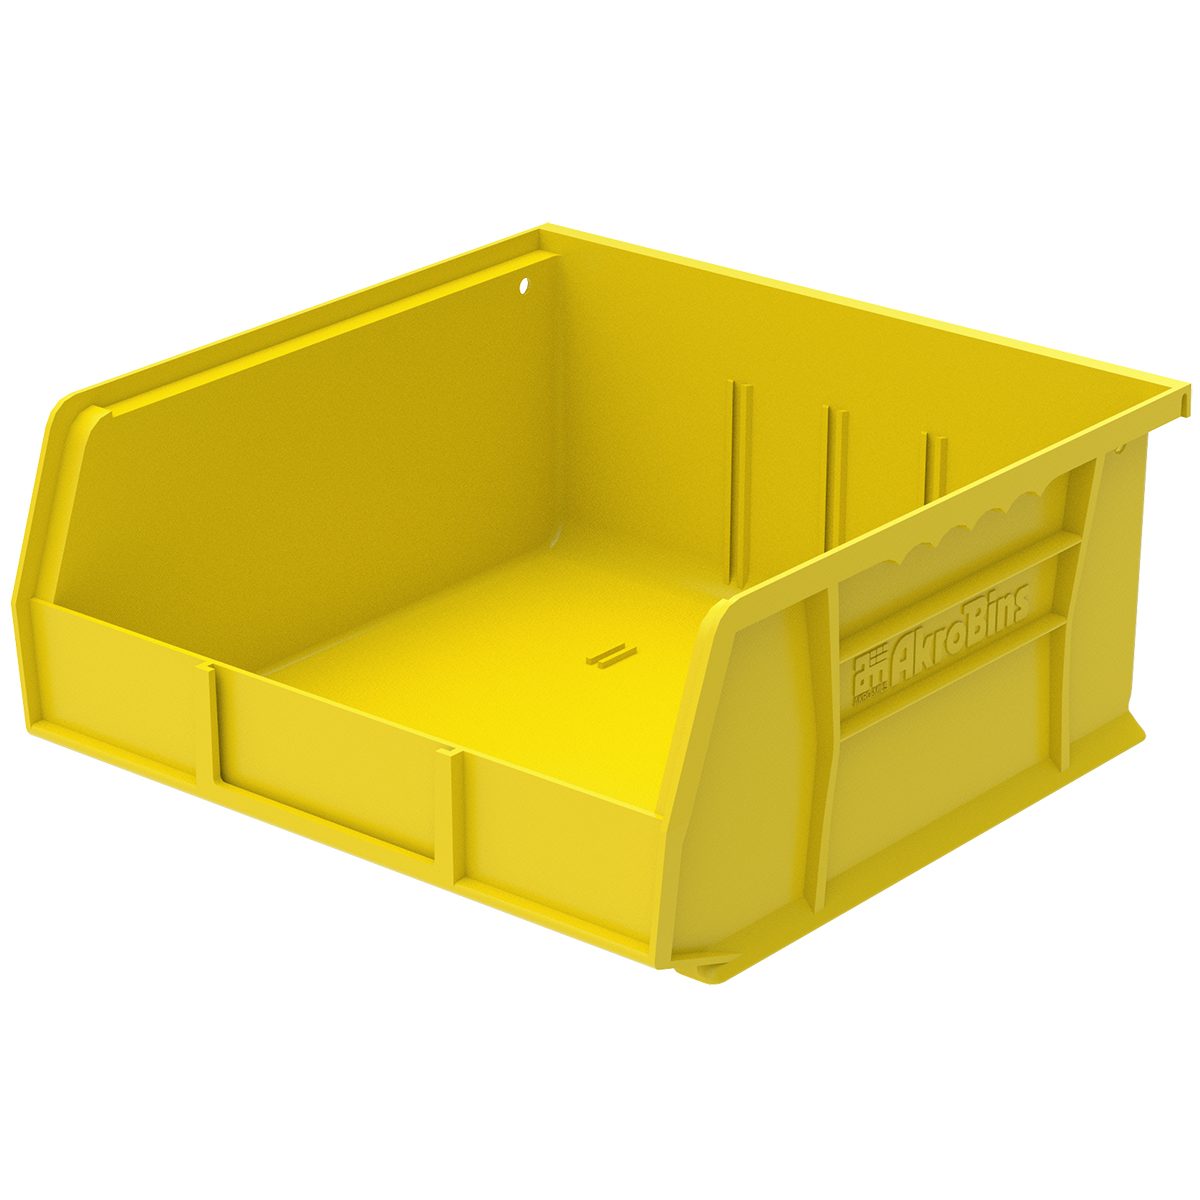 AkroBin 10-7/8 x 11 x 5, Yellow (30235YELLO).  This item sold in carton quantities of 6.